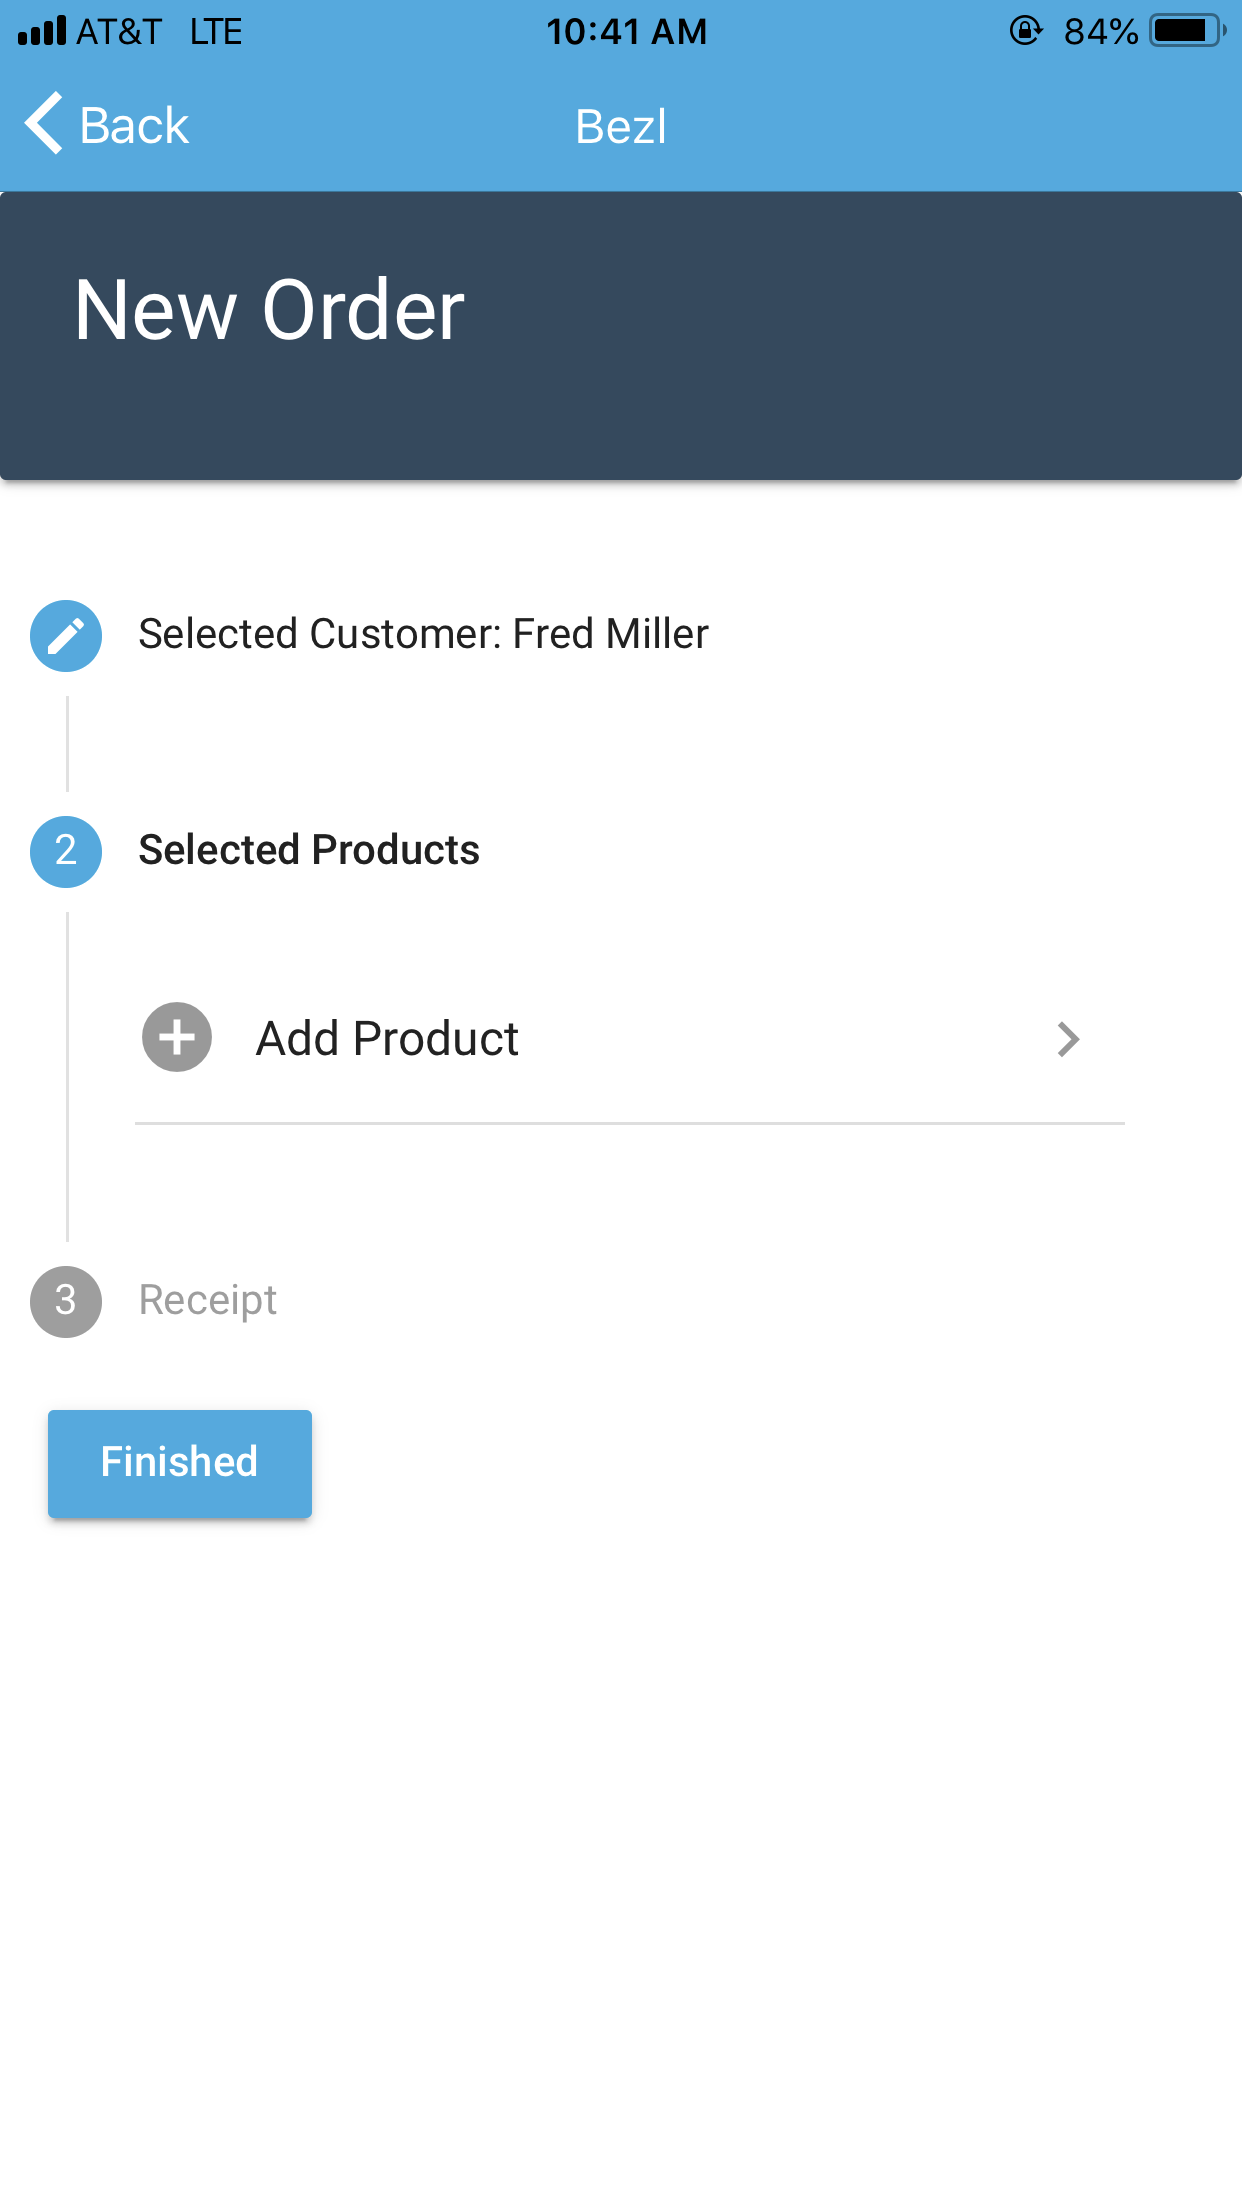 Once the customer is selected, the user selects Add Product to add items to the order.